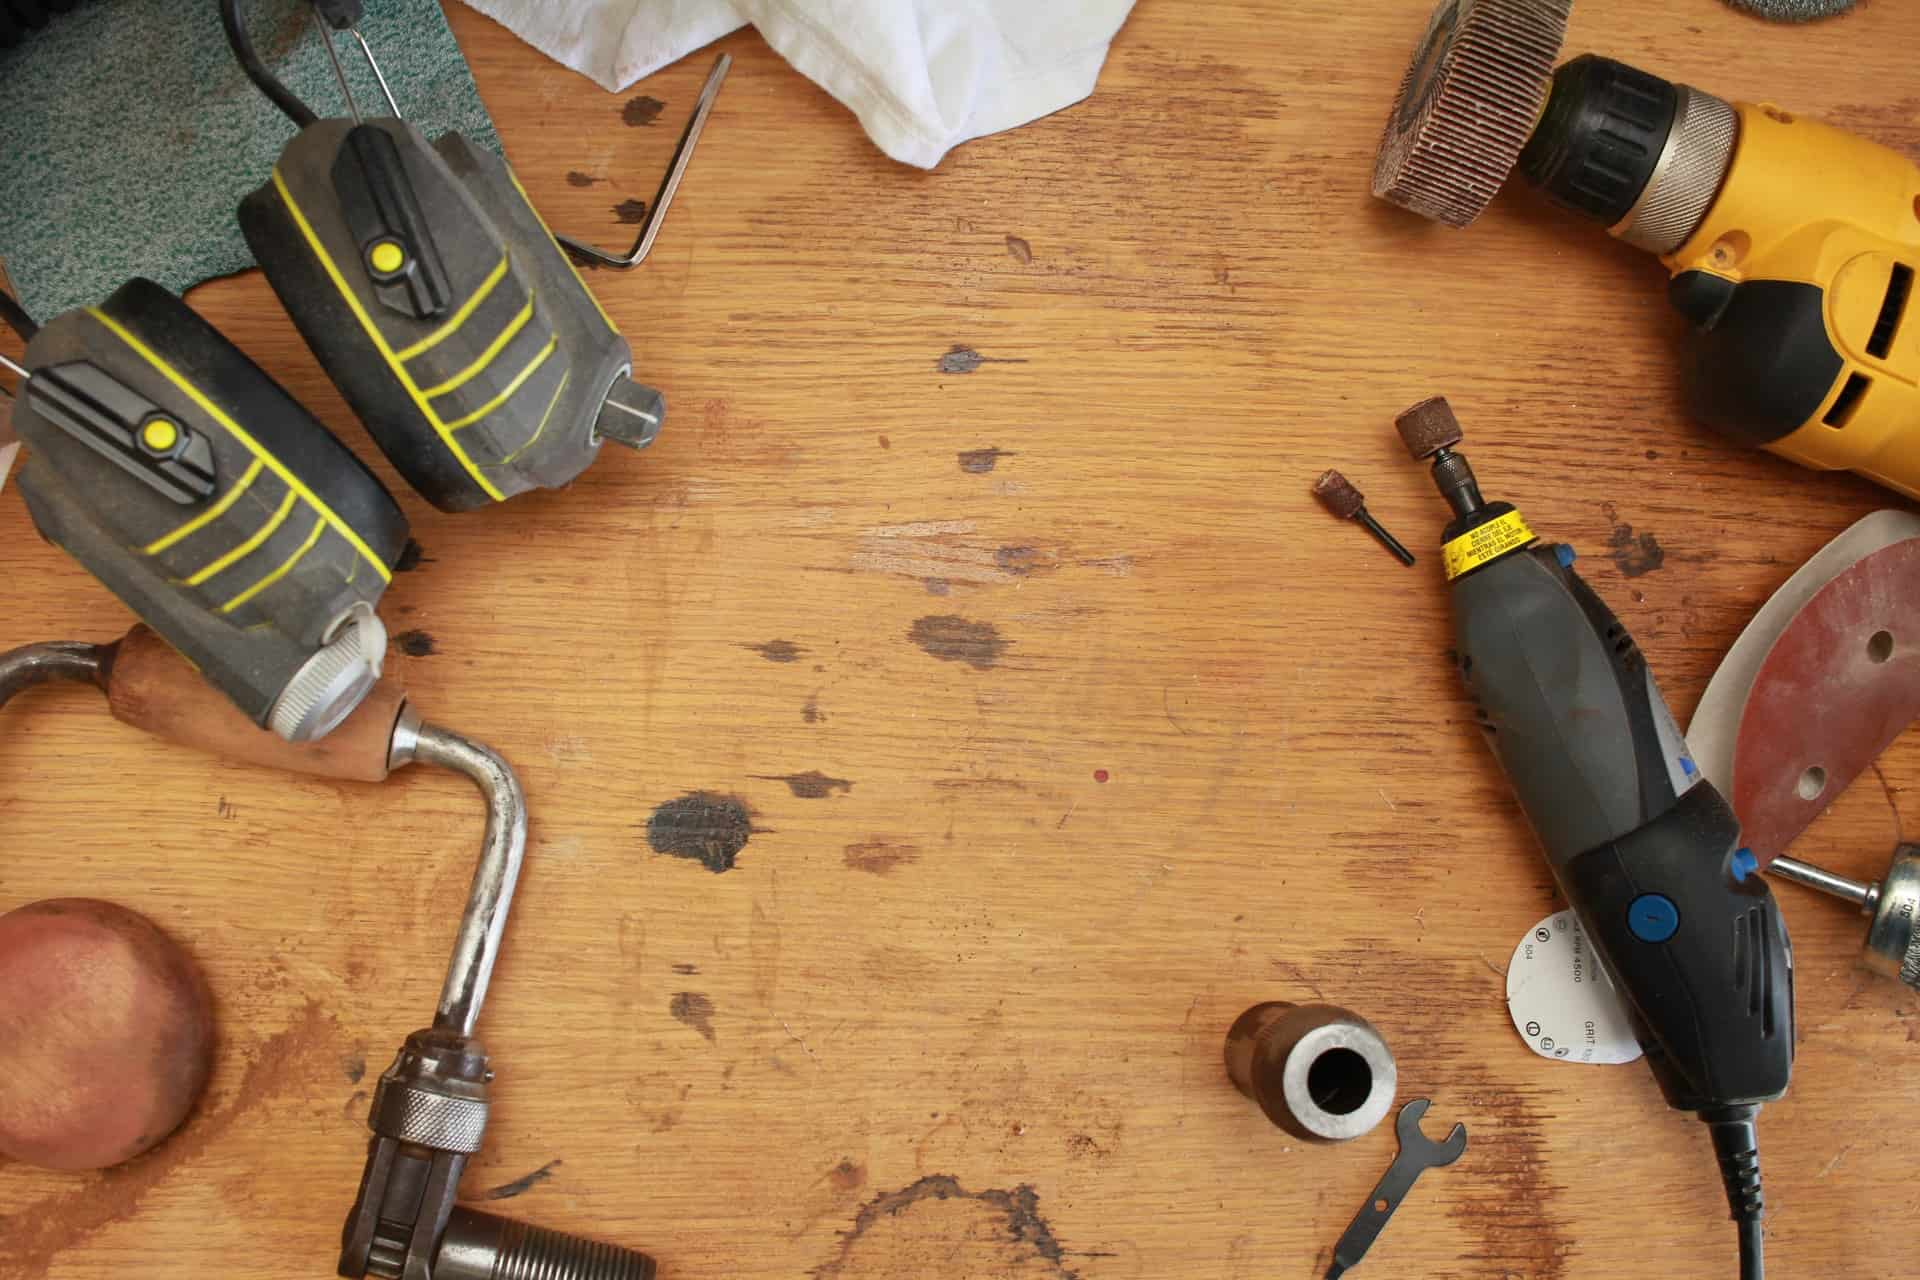 How to Polish Rocks with a Dremel Drill